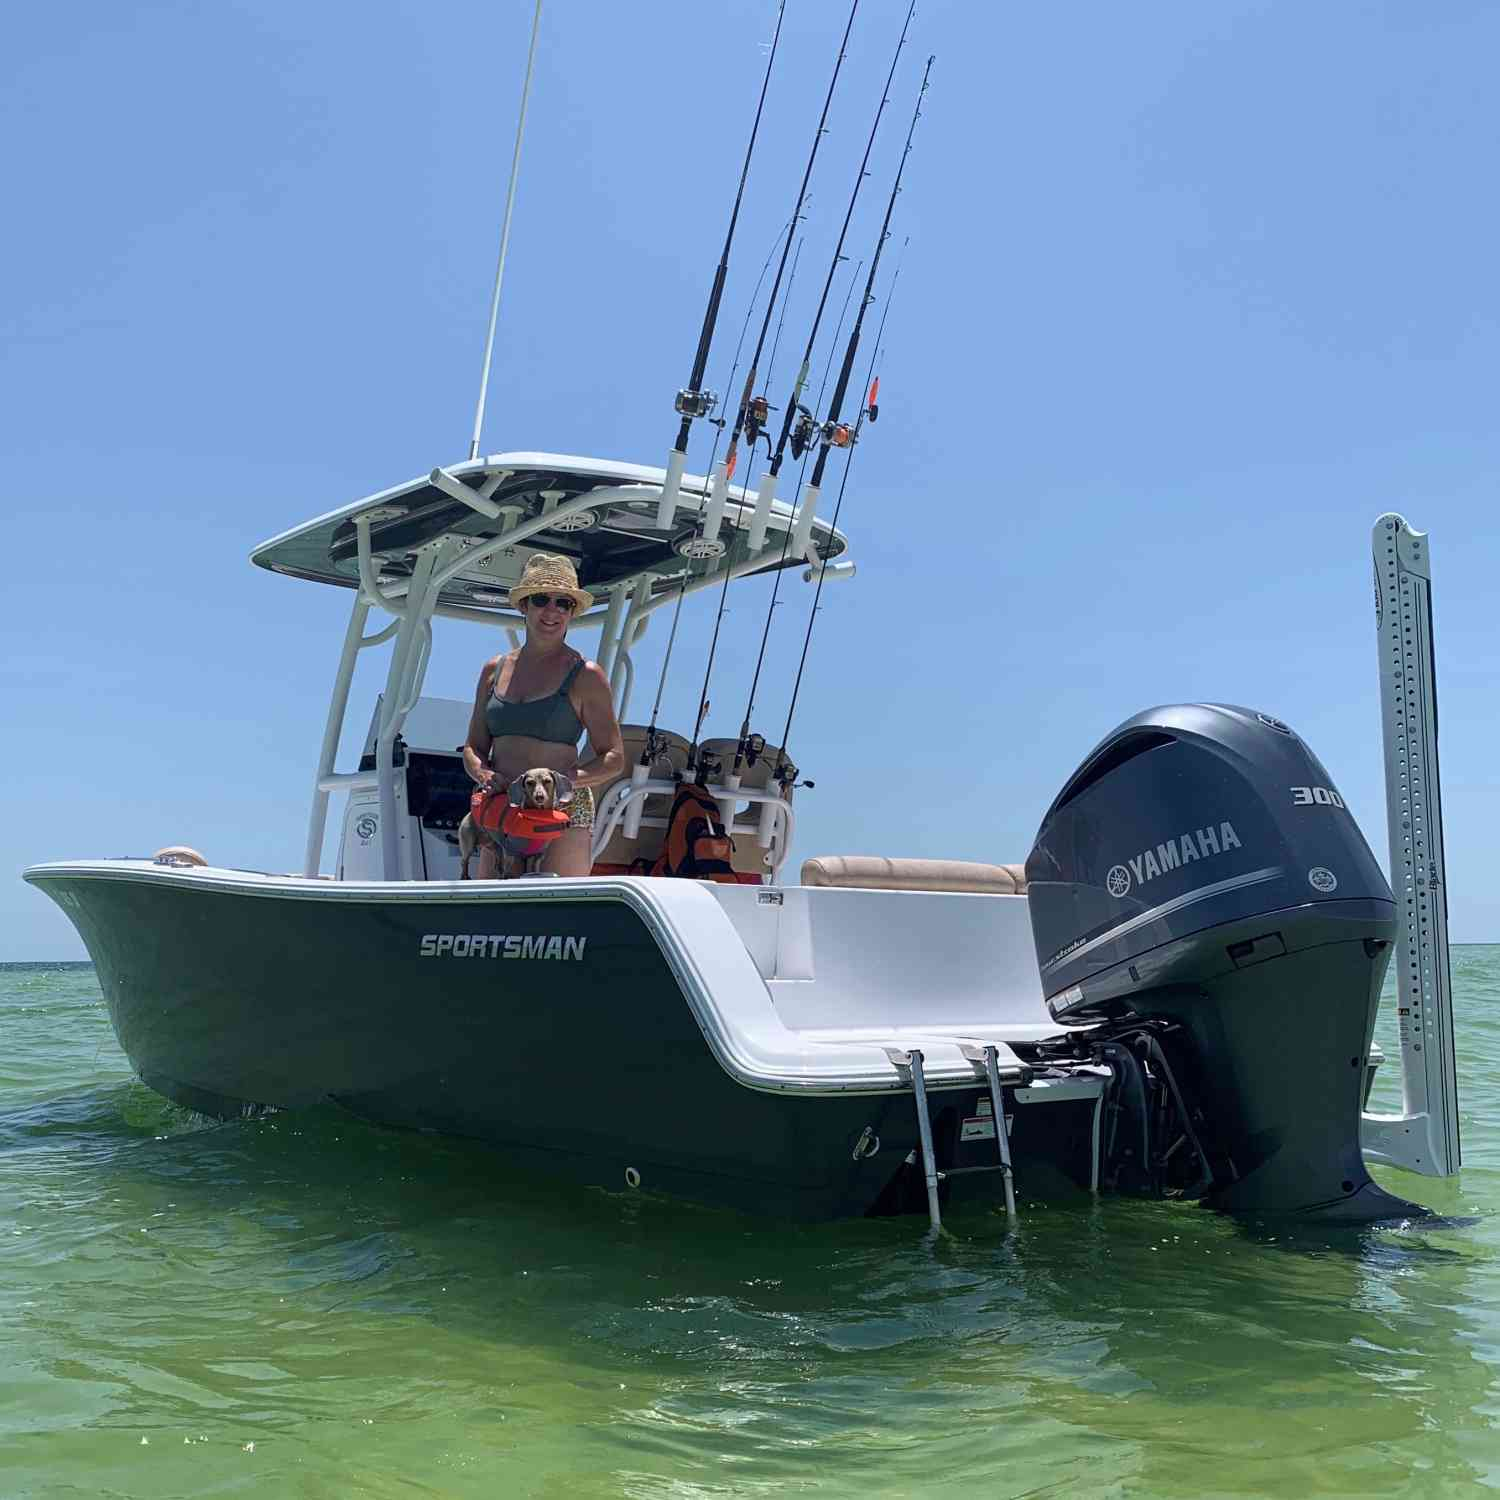 Title: A Shark on the Water - On board their Sportsman Heritage 241 Center Console - Location: St. George Island Florida. Participating in the Photo Contest #SportsmanAugust2020